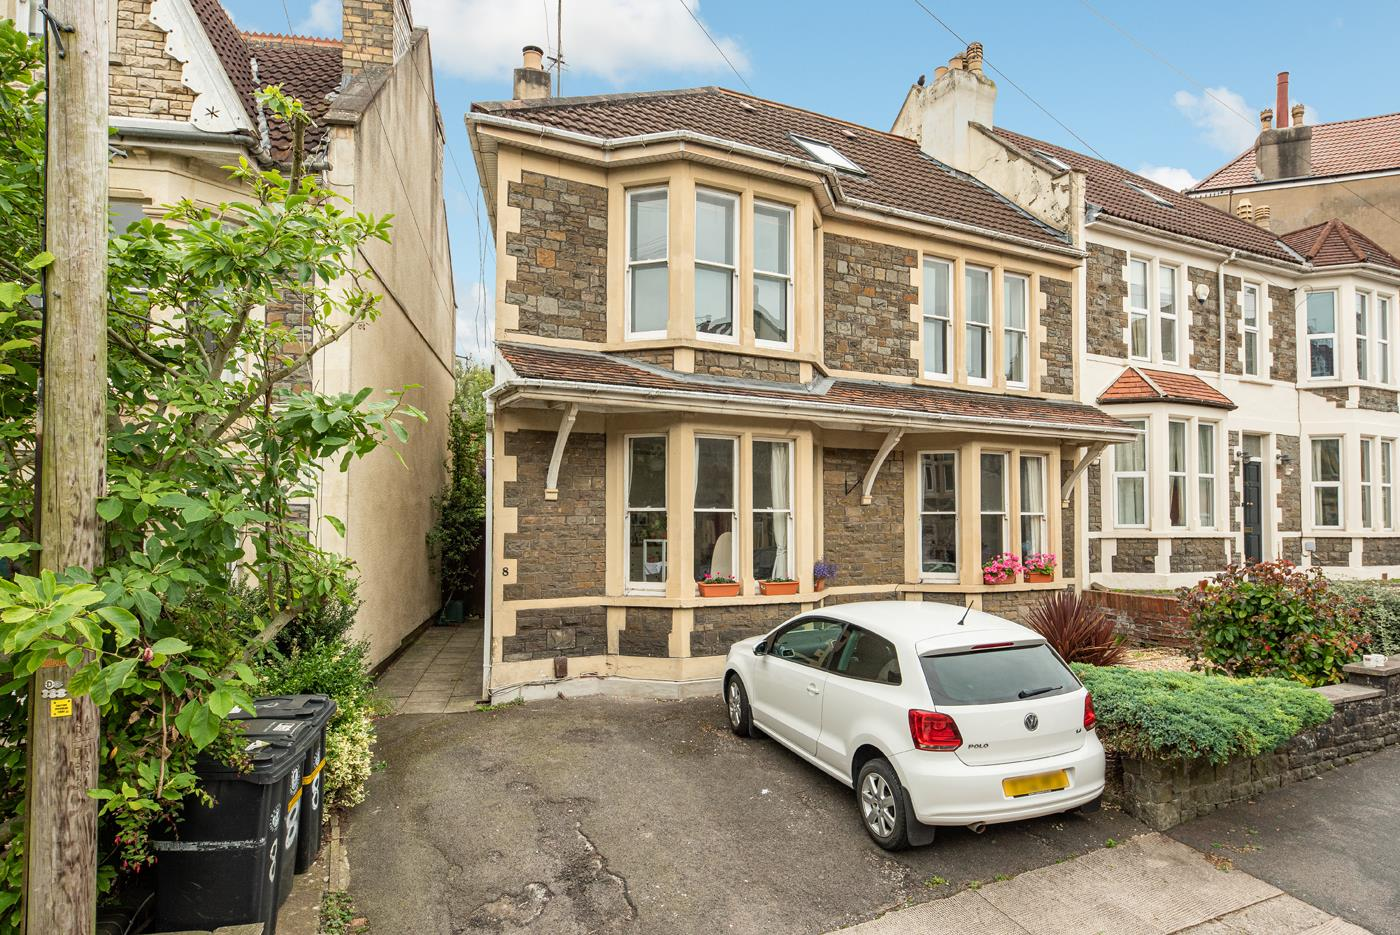 2 bed apartment to rent in Harcourt Road, Bristol, BS6